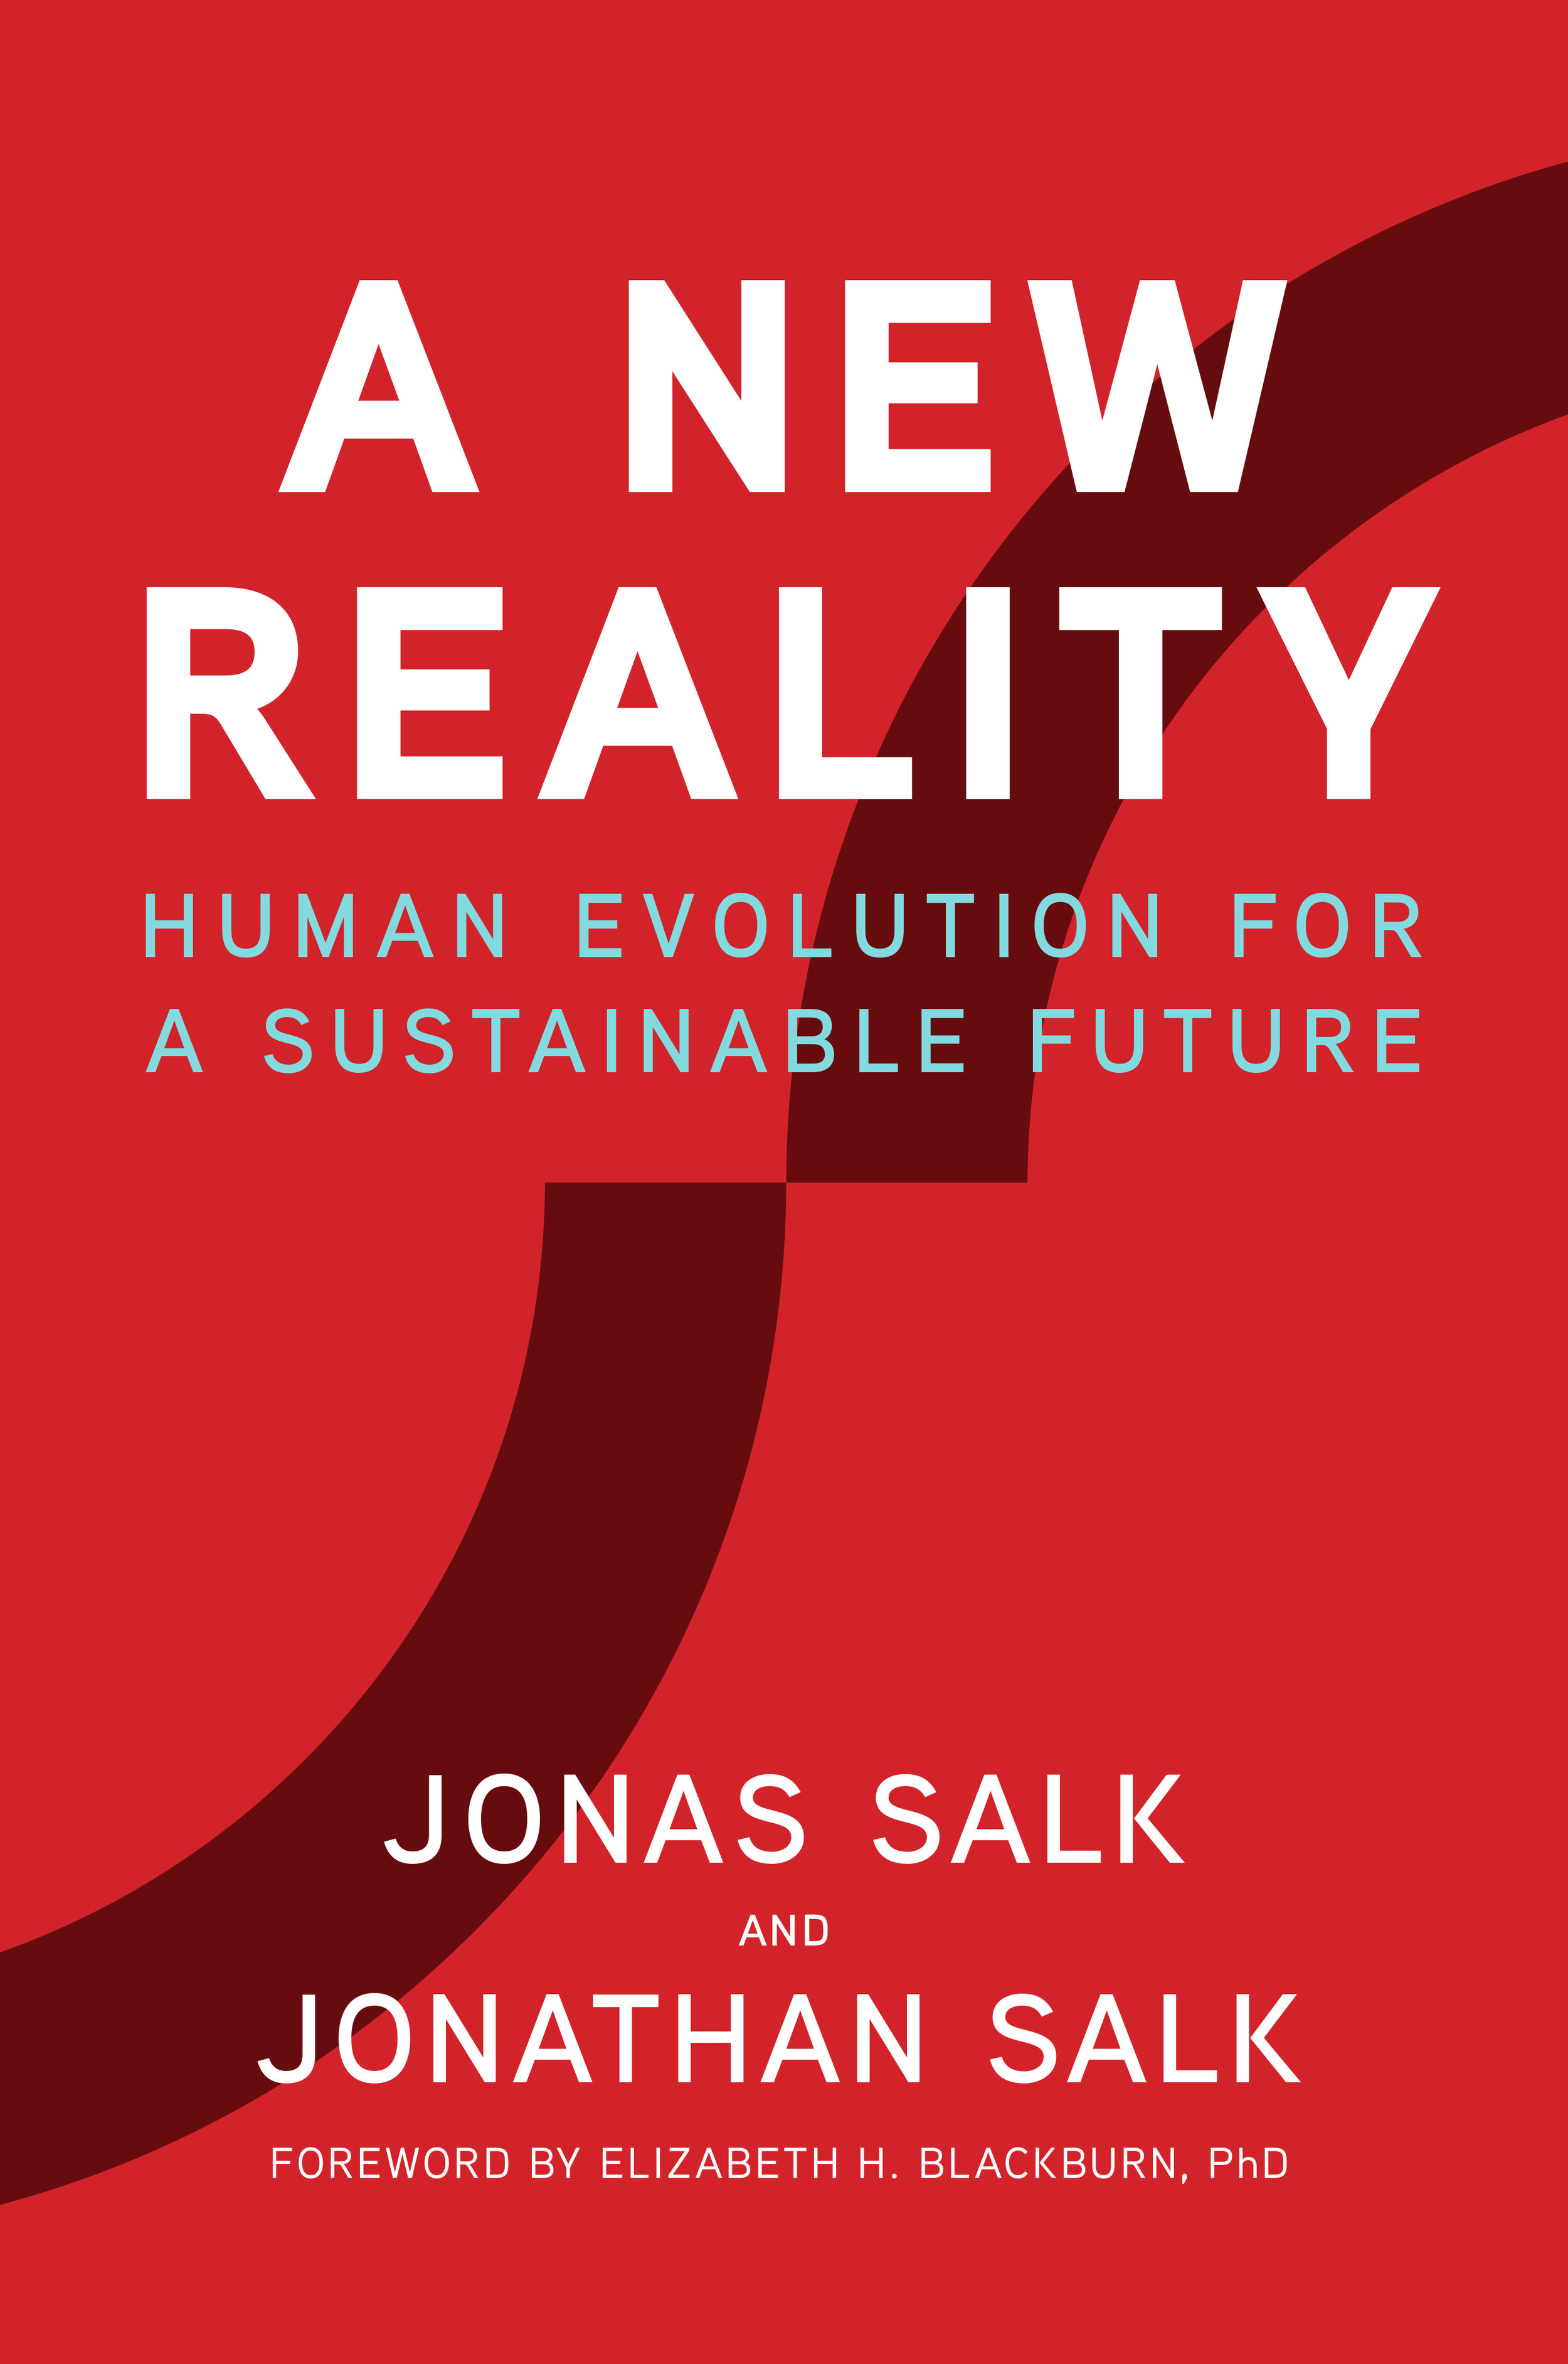 Book cover for A New Reality: Human Evolution for a Sustainable Future, written by Dr. Jonas Salk and Dr. Jonathan Salk with David Dewane. Foreword by Dr. Elizabeth Blackburn.